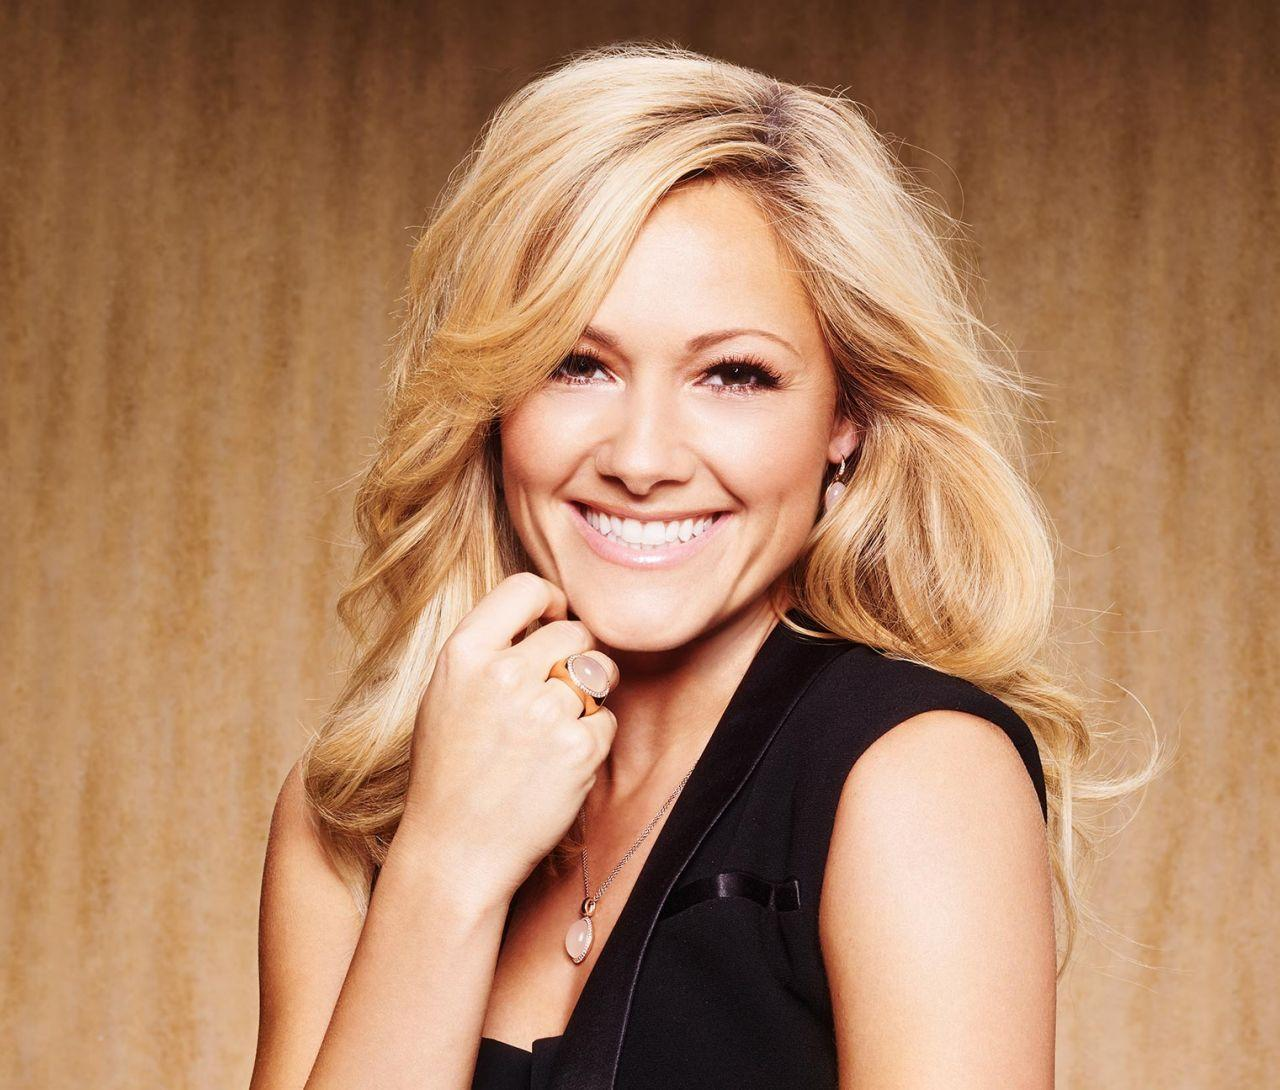 Helene Fischer Wallpapers - Wallpaper Cave